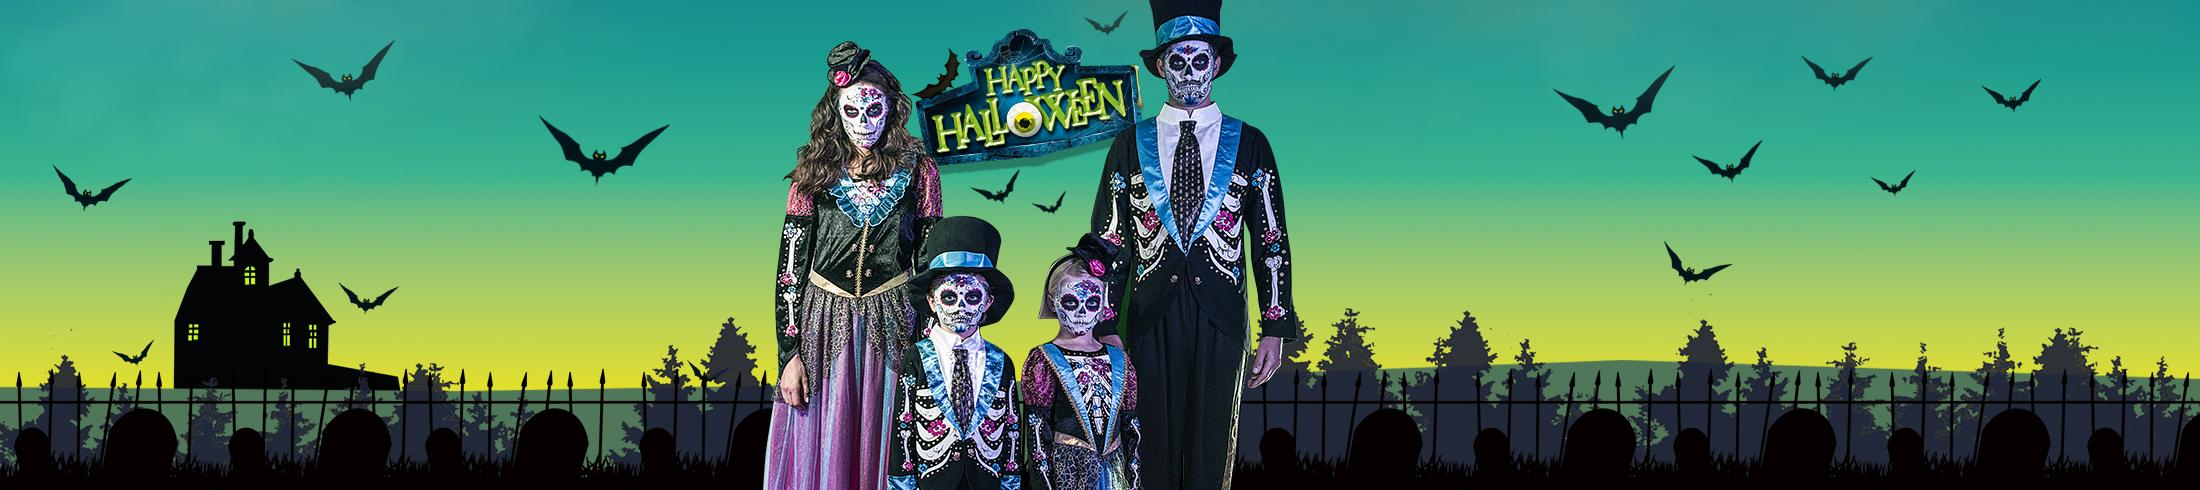 Make Halloween a spook-tastic one with our range of outfits for all the family at George.com